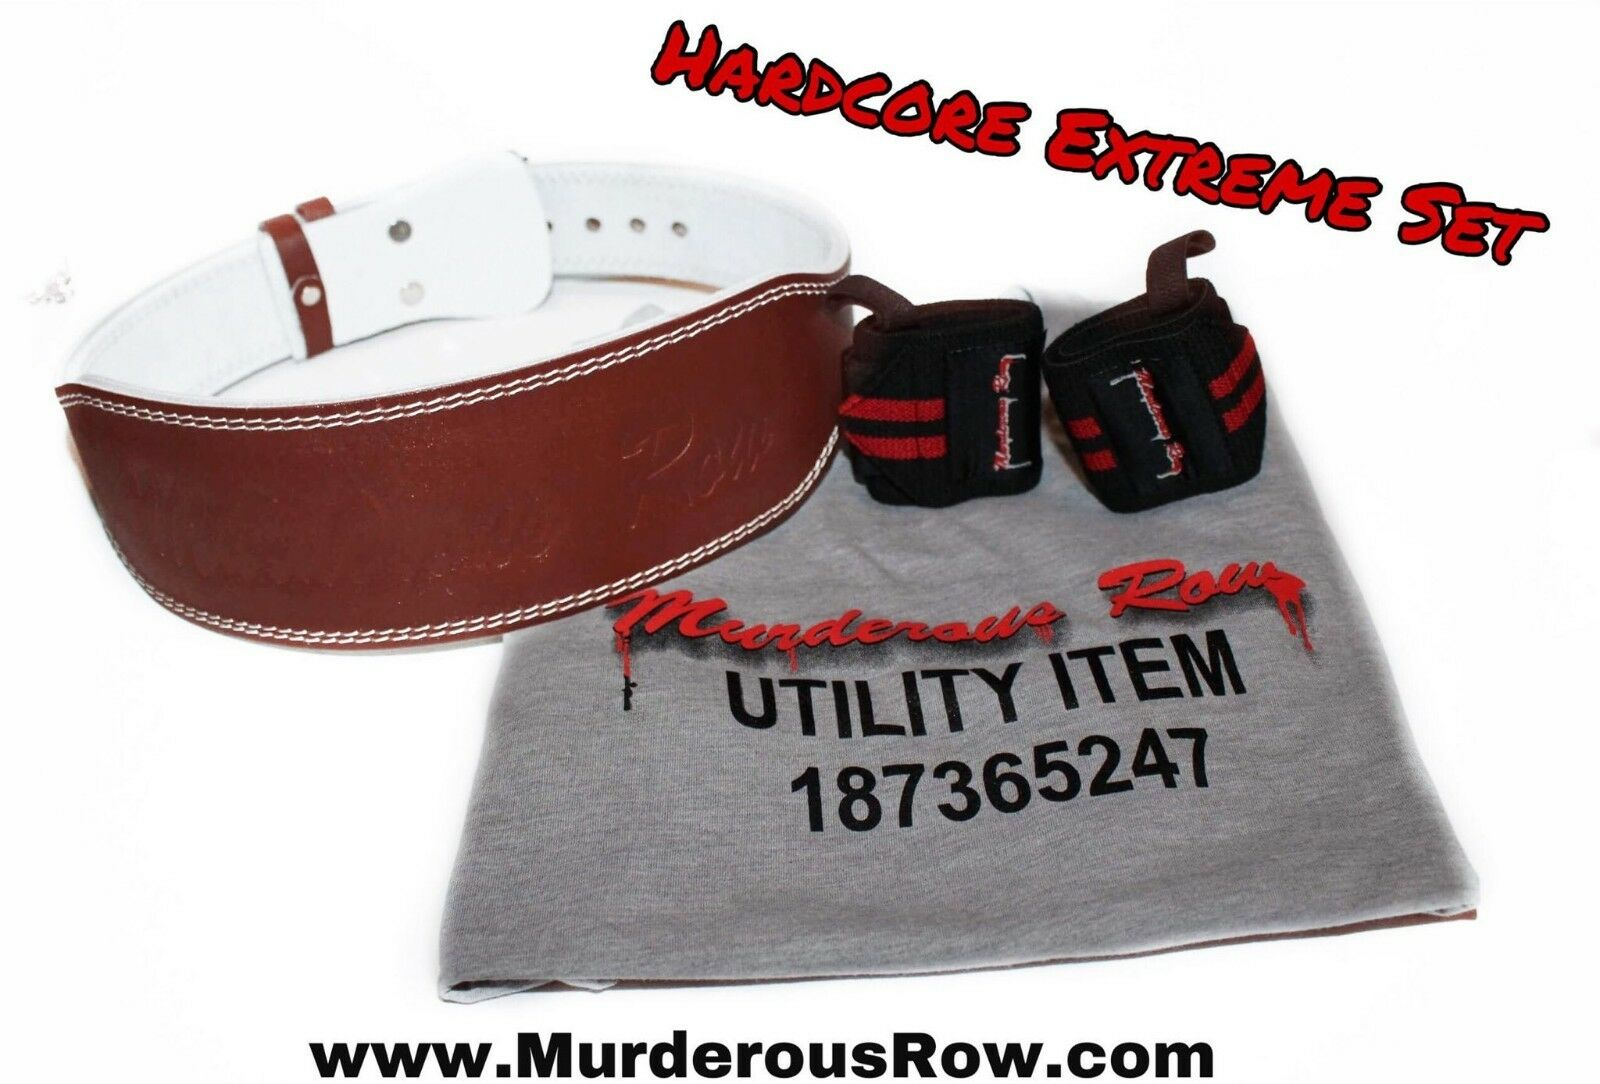 Murderous Row WeightLifting Genuine  Leather Belt (LARGE) + Wrist Wraps + Shirt  outlet online